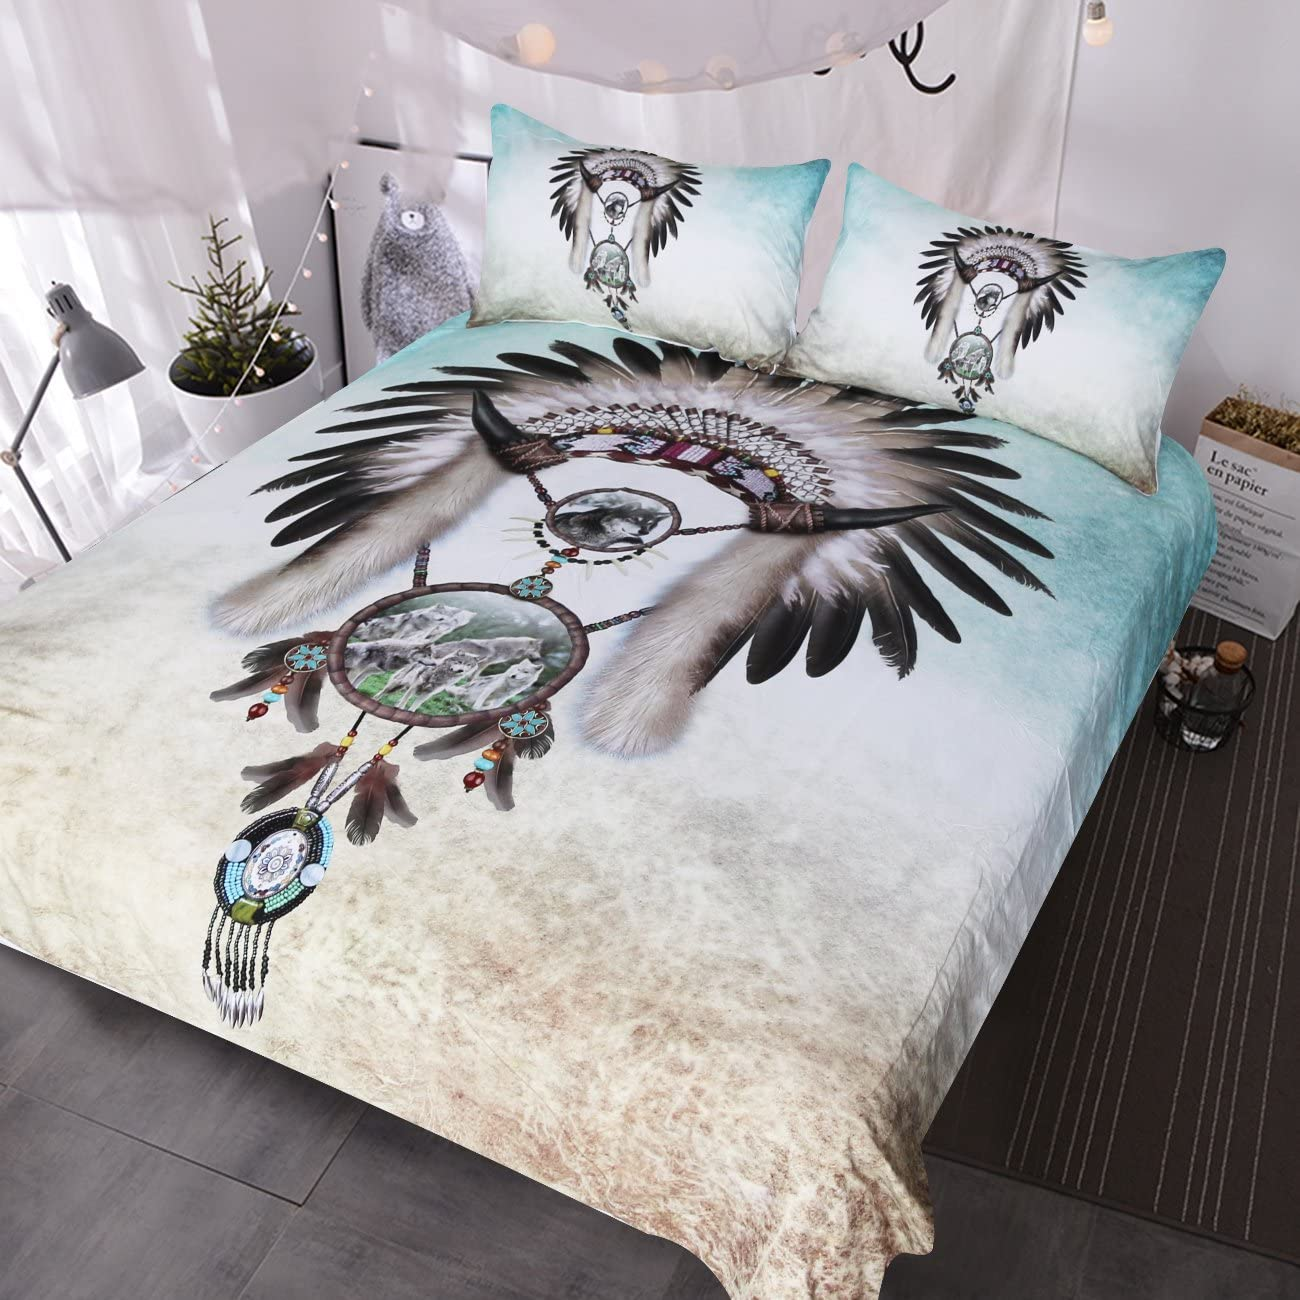 BlessLiving Wolf Dreamcatcher Bedding Dream Catcher Feather Beads Boy Western Bedding 3 Piece Gray Teal Blue Duvet Cover (Queen)